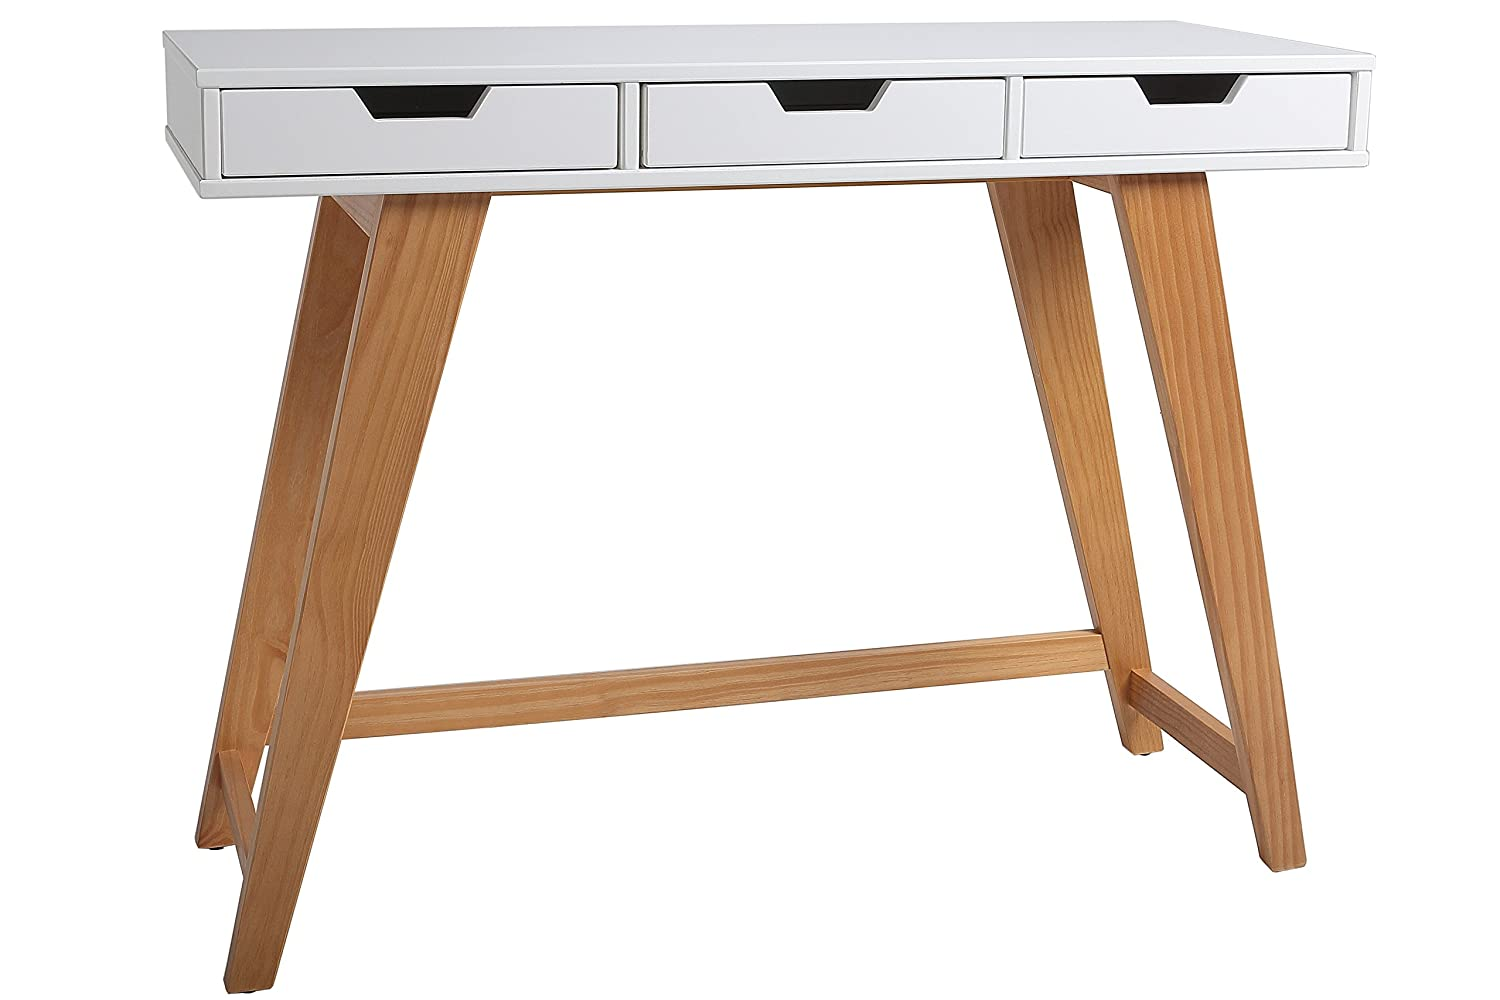 Mueble recibidor Color Blanco con Patas de Madera Maciza https://amzn.to/2En0ps3